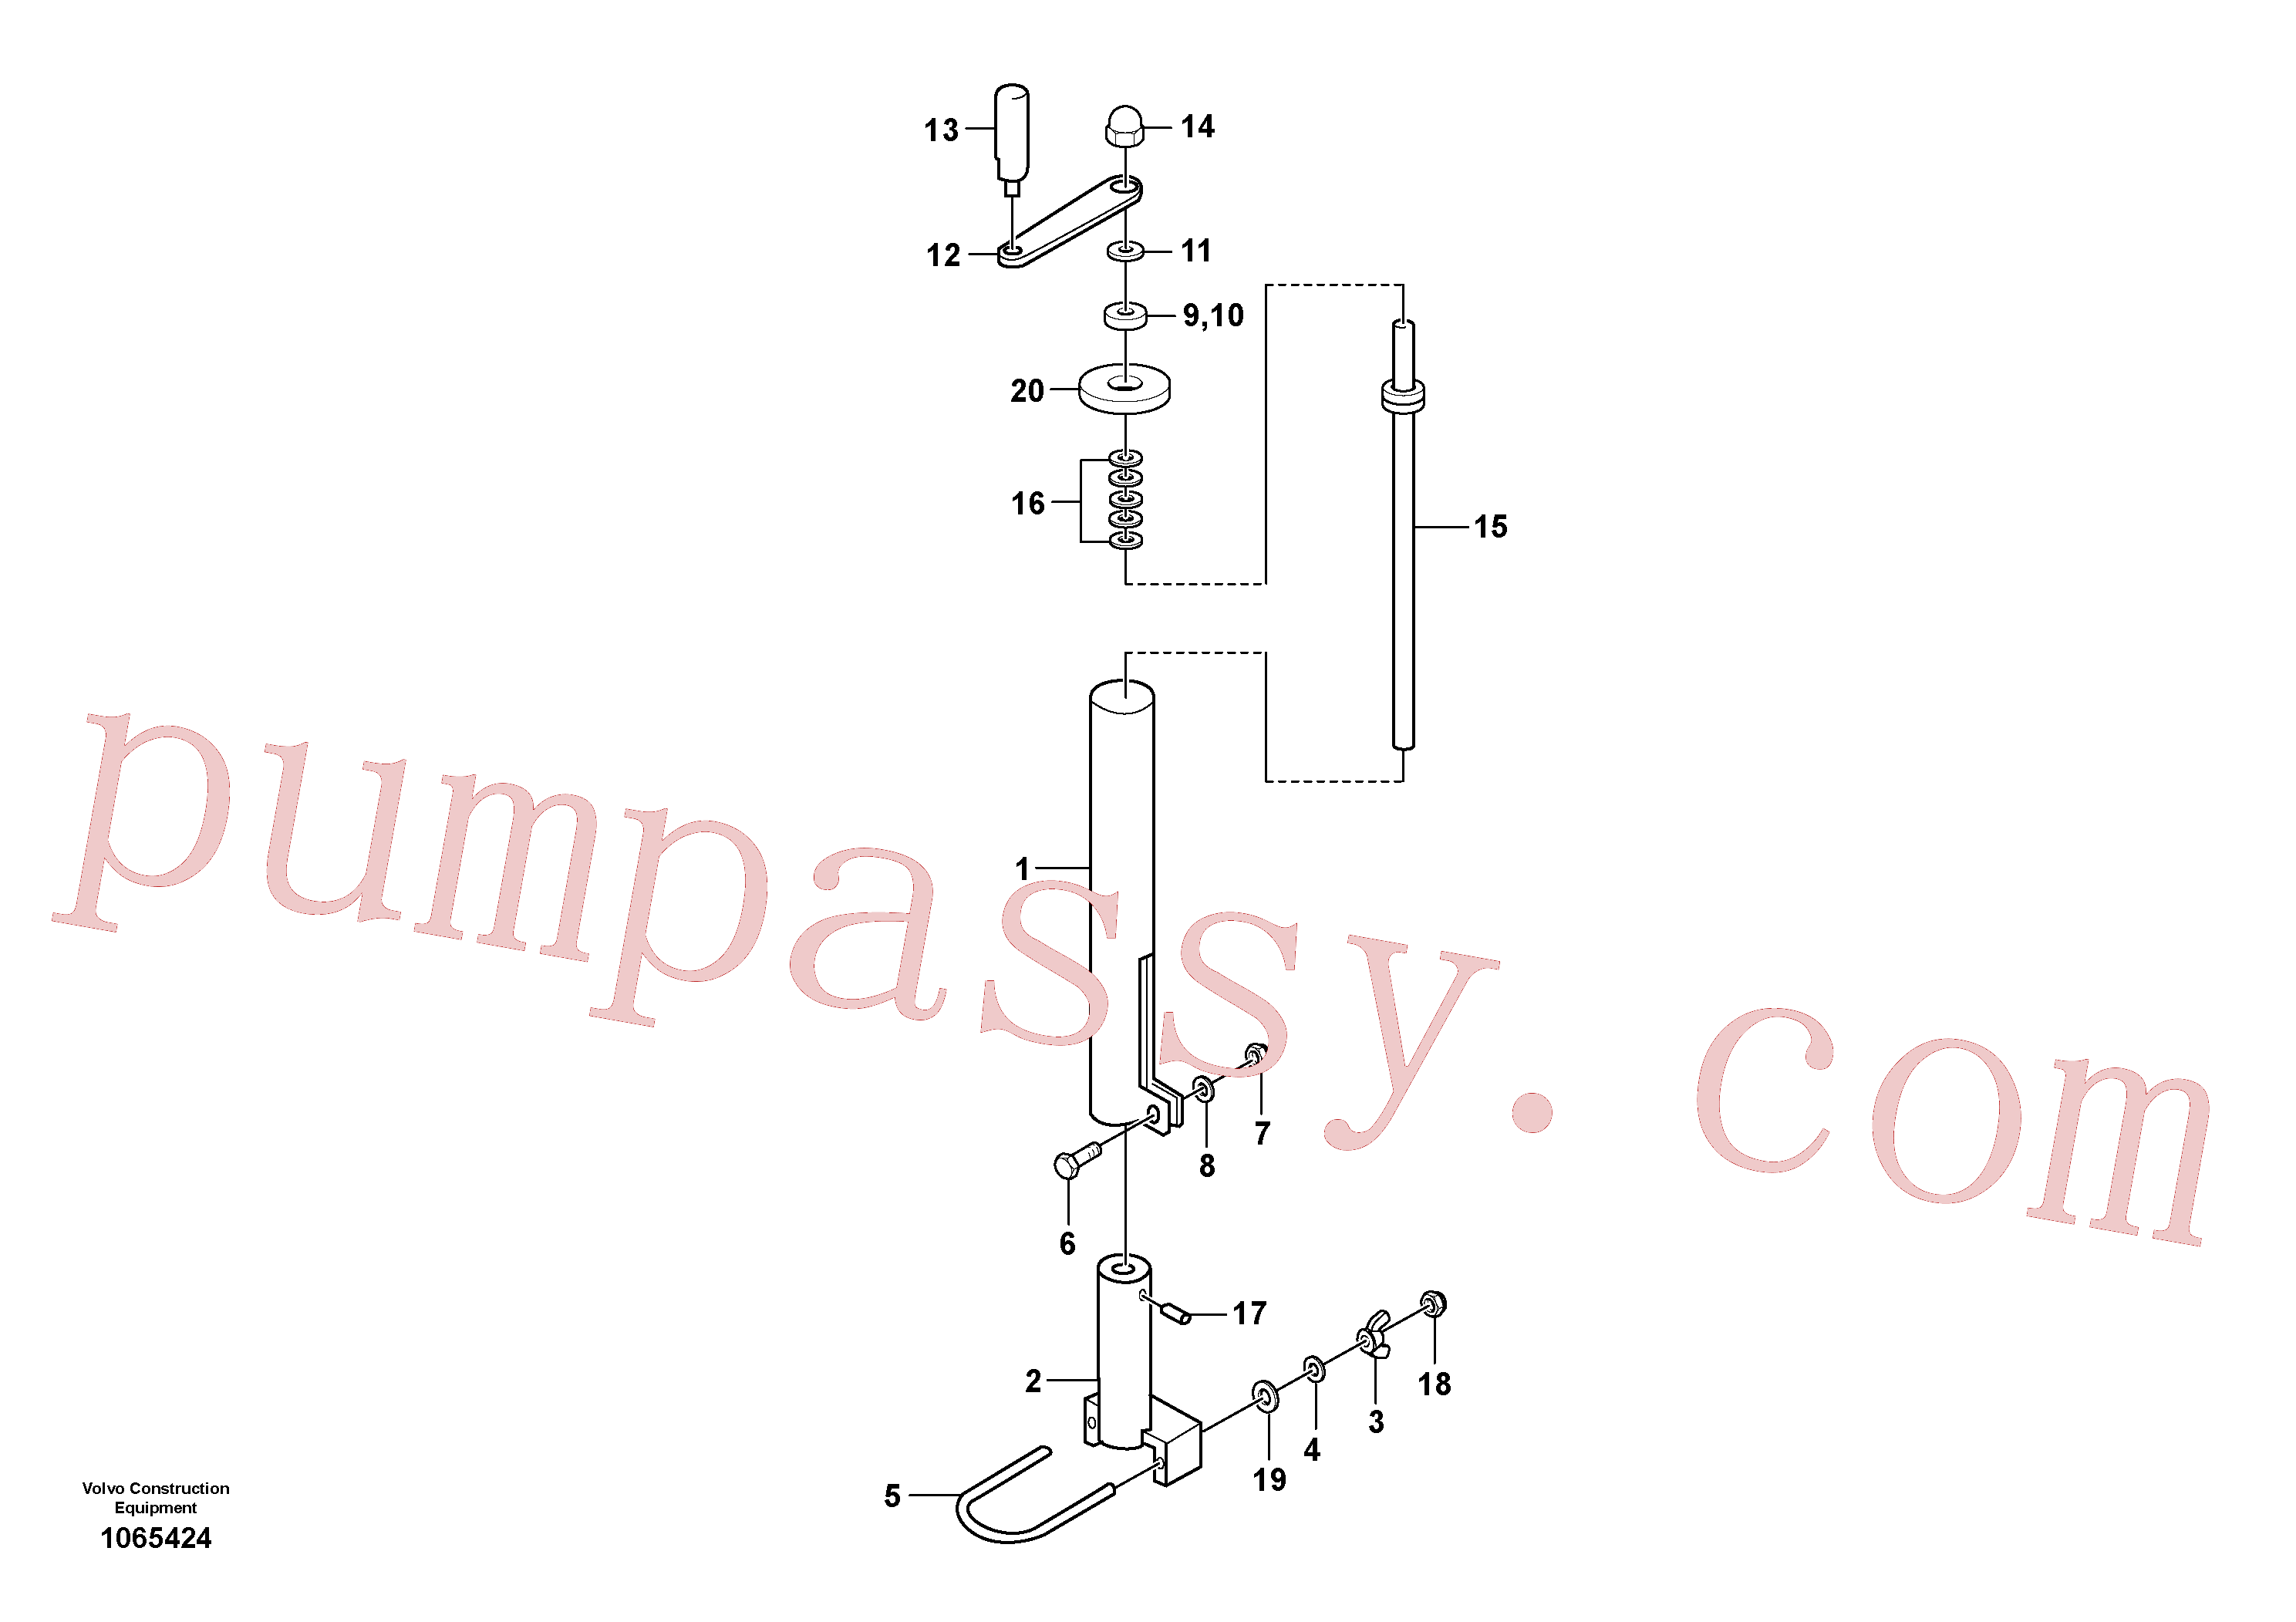 RM14104426 for Volvo Mechanical Control Assembly(1065424 assembly)